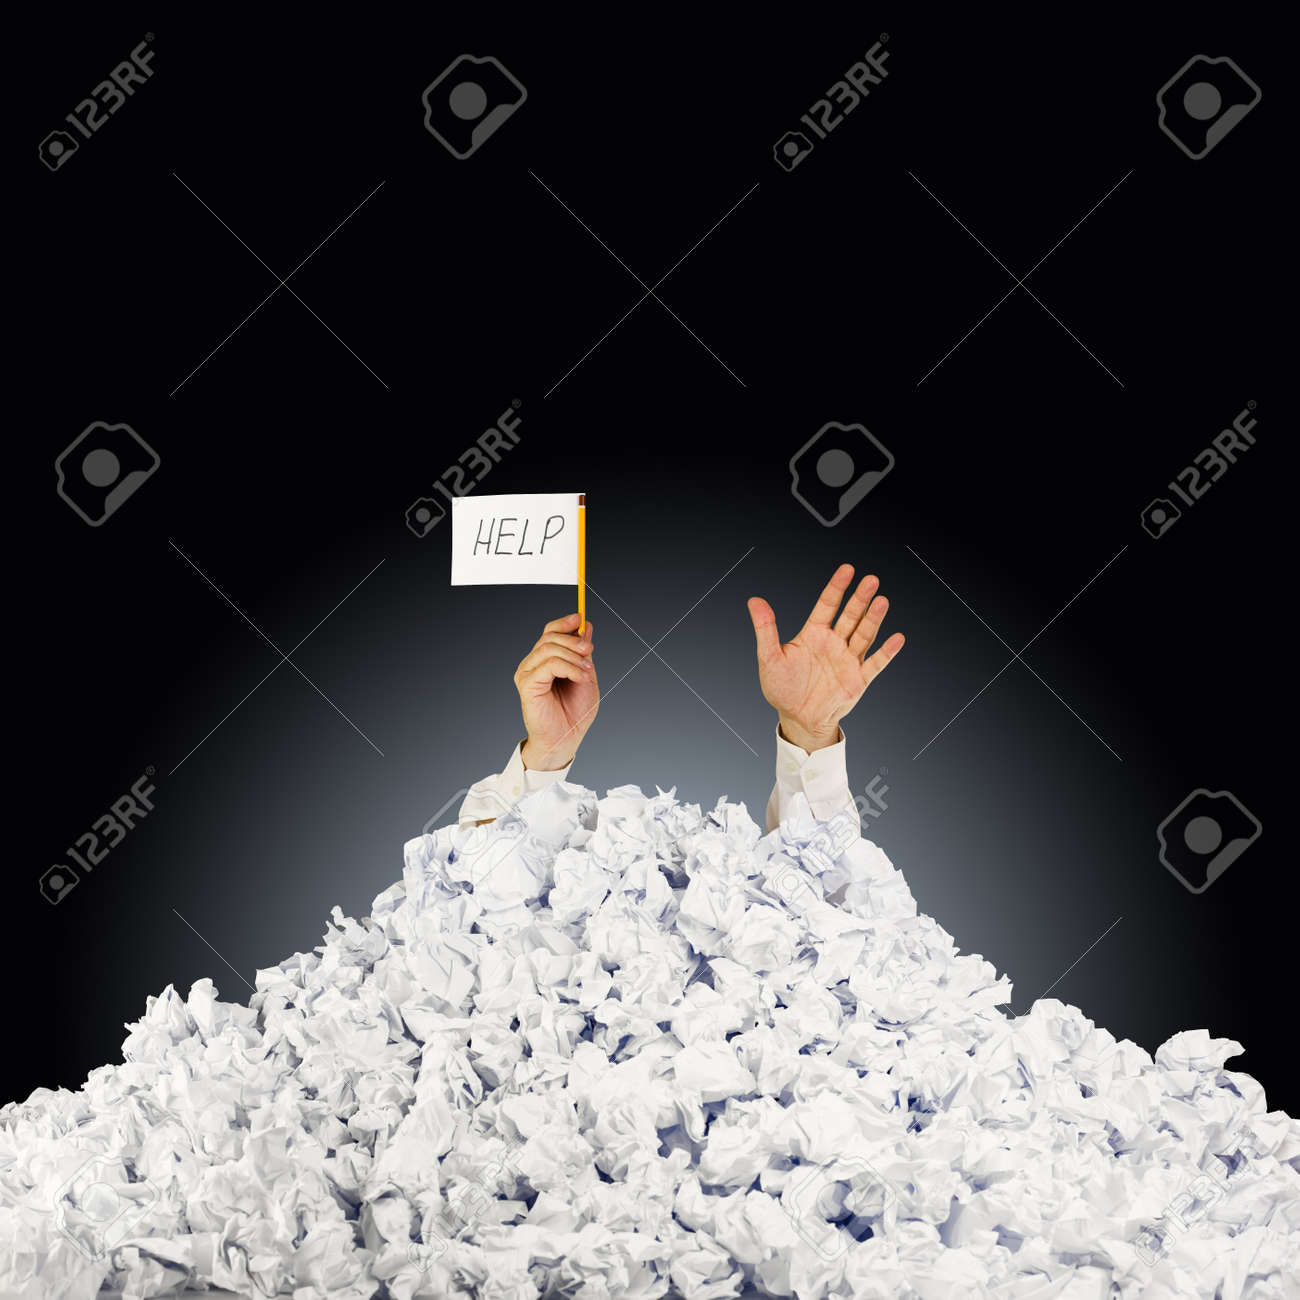 person under crumpled pile of papers hand holding a help person under crumpled pile of papers hand holding a help sign stock photo 13756182